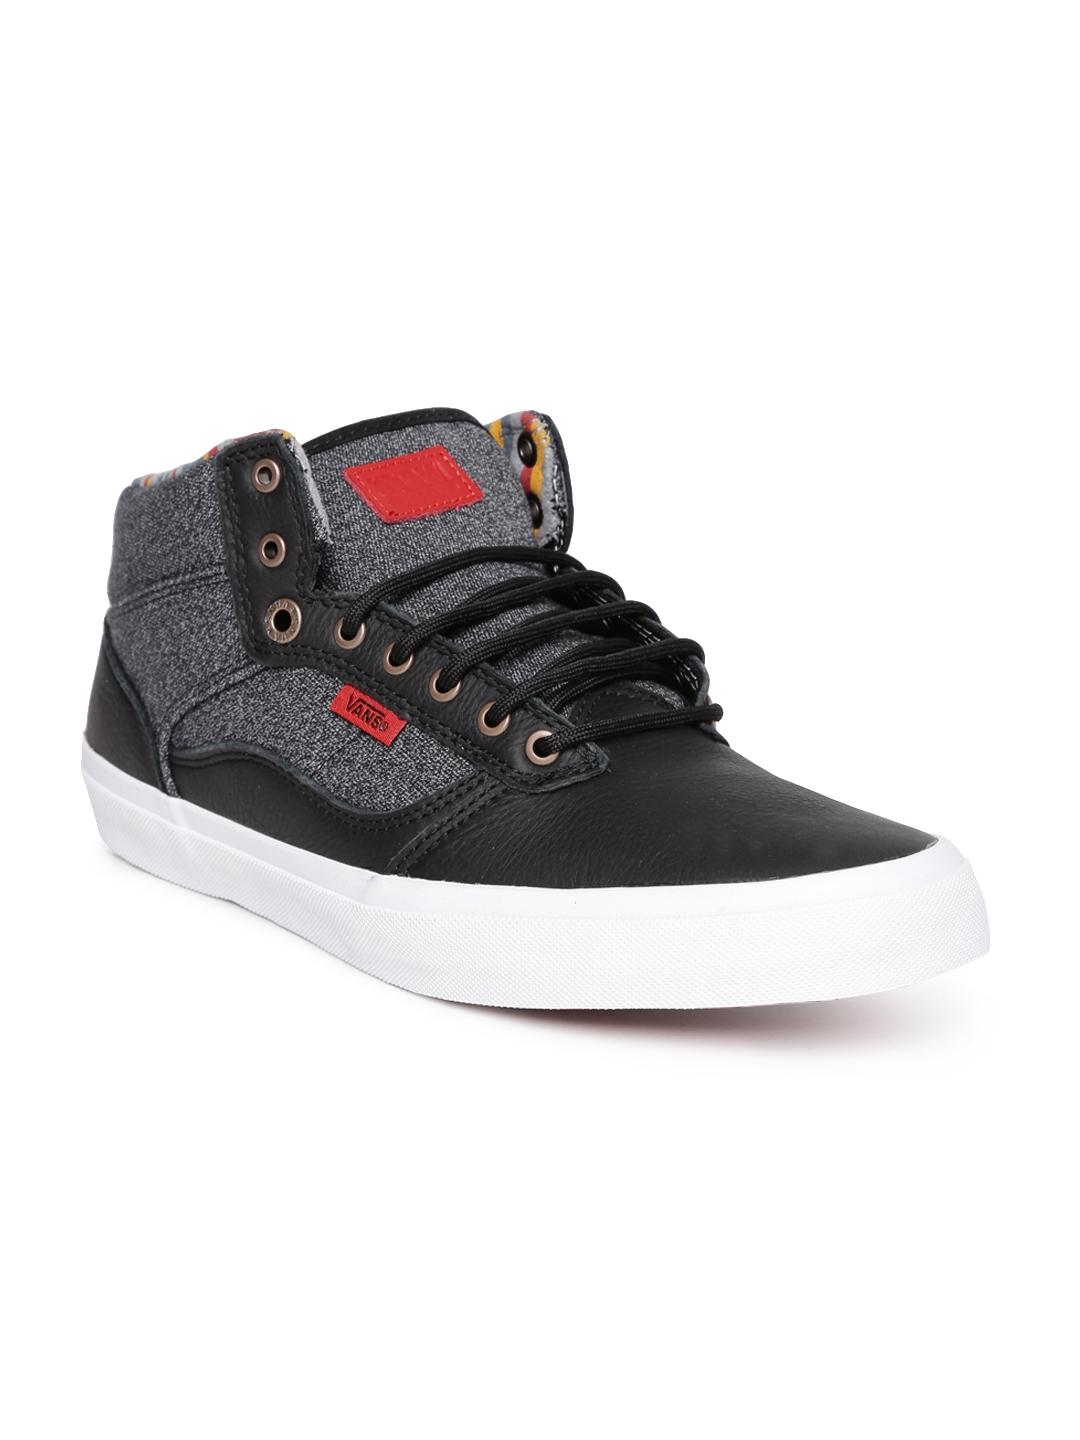 5566ed2c159e Buy Vans Men Black   Grey Leather Casual Shoes - Casual Shoes for ...